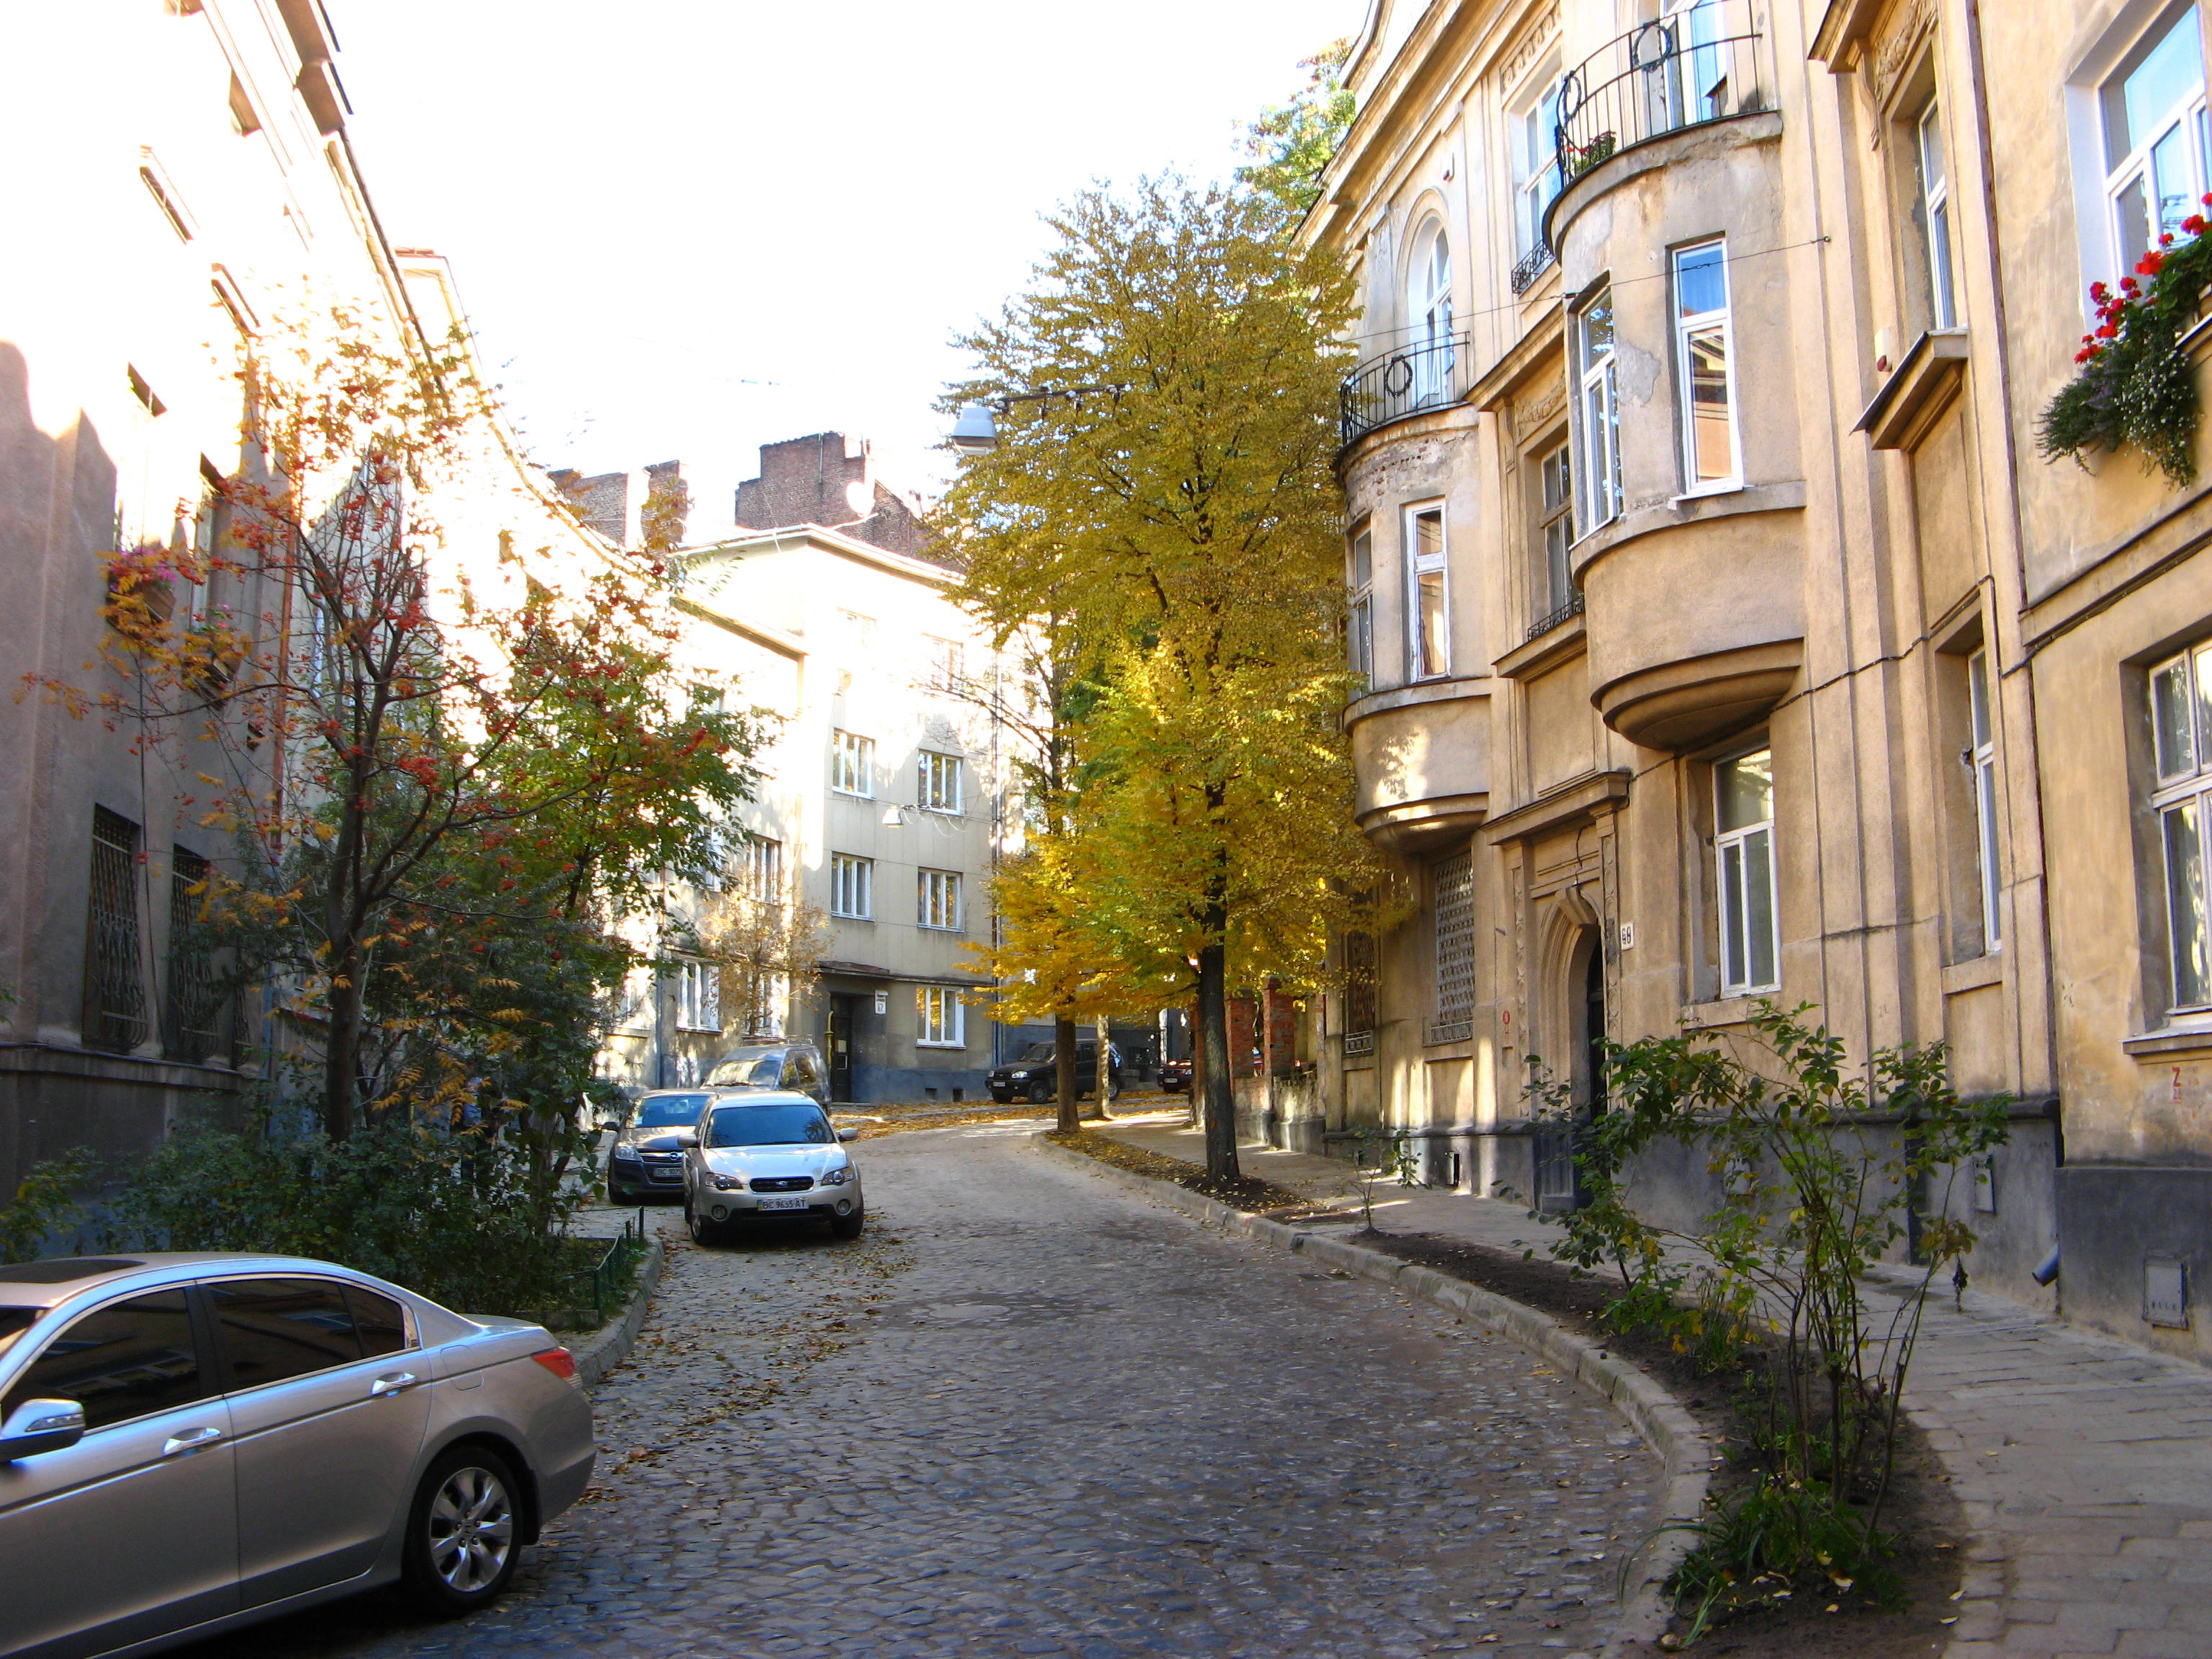 narrow street with buikdings and cars